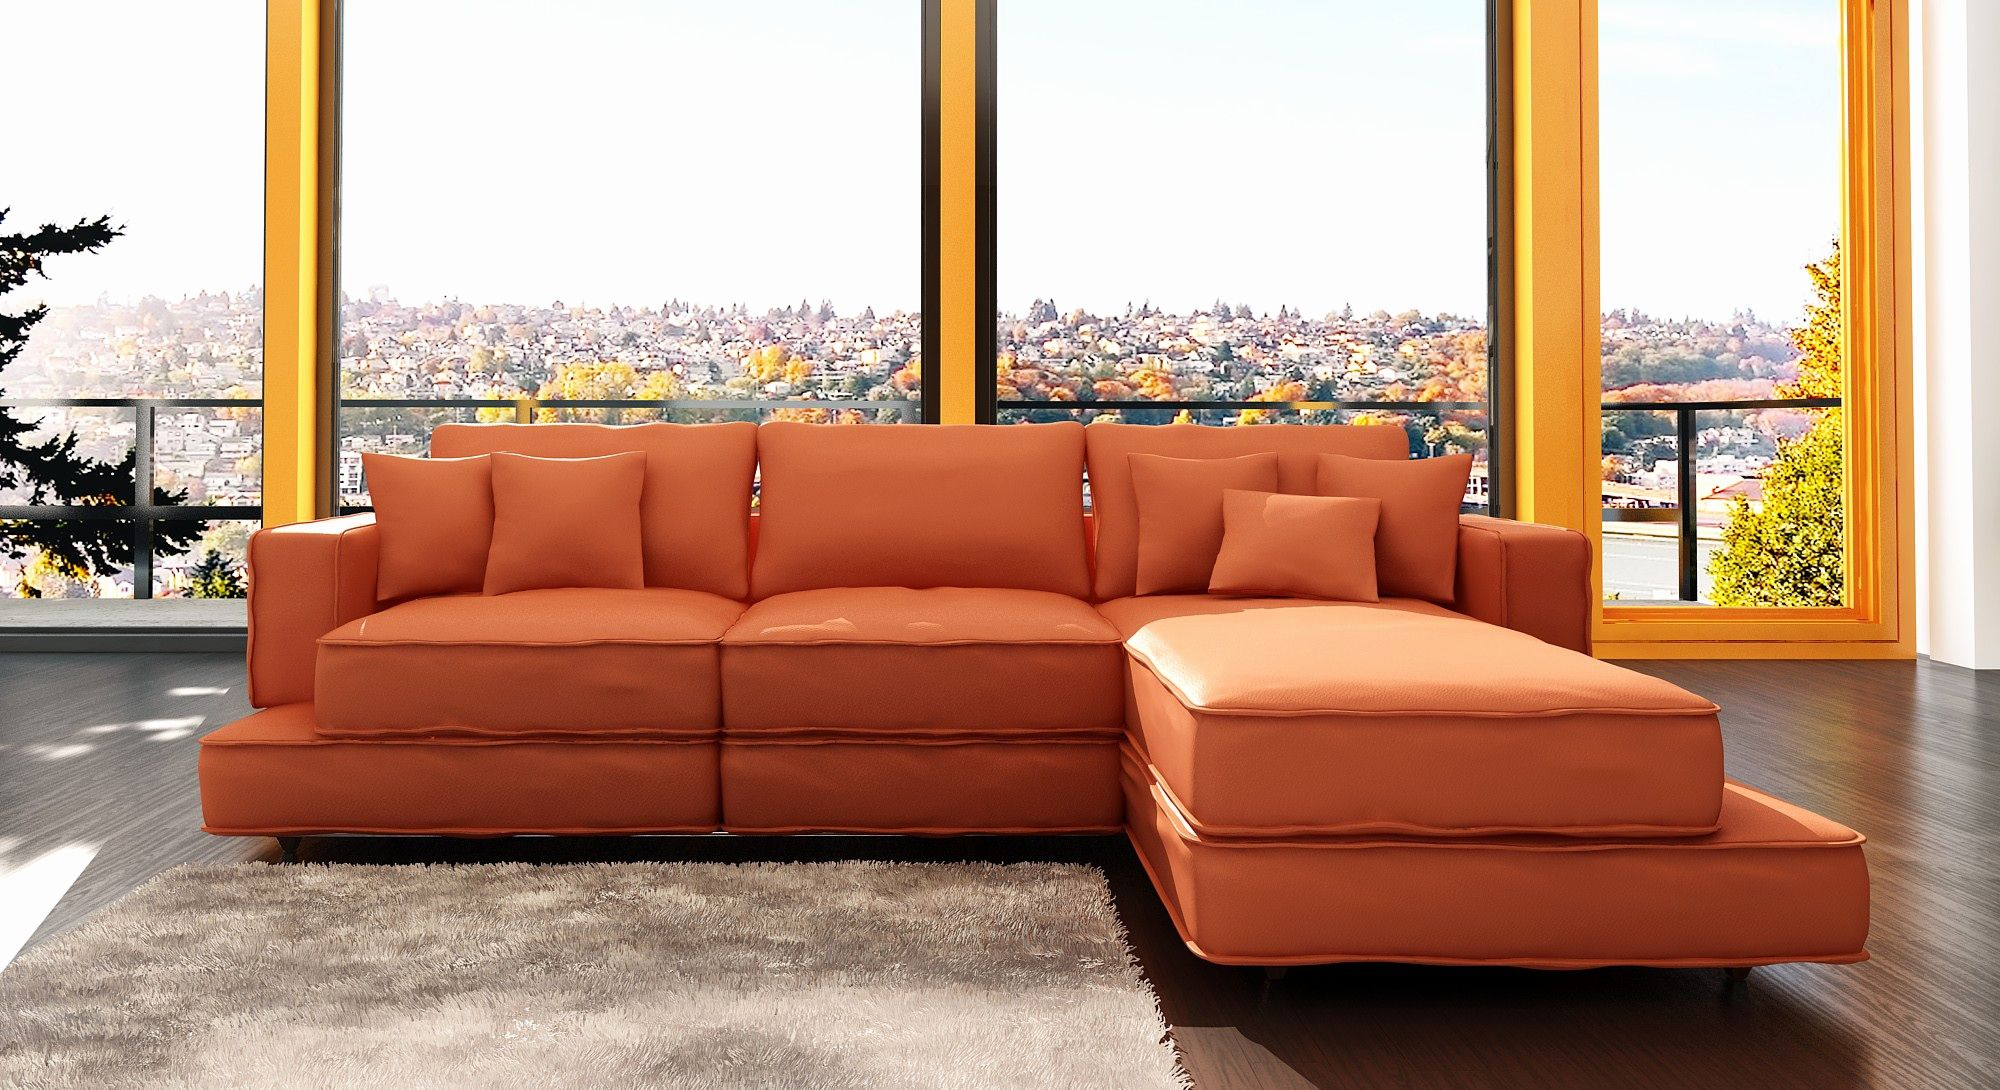 Amazing Orange Sectional Sofa Pics Orange Sectional Sofa Unique